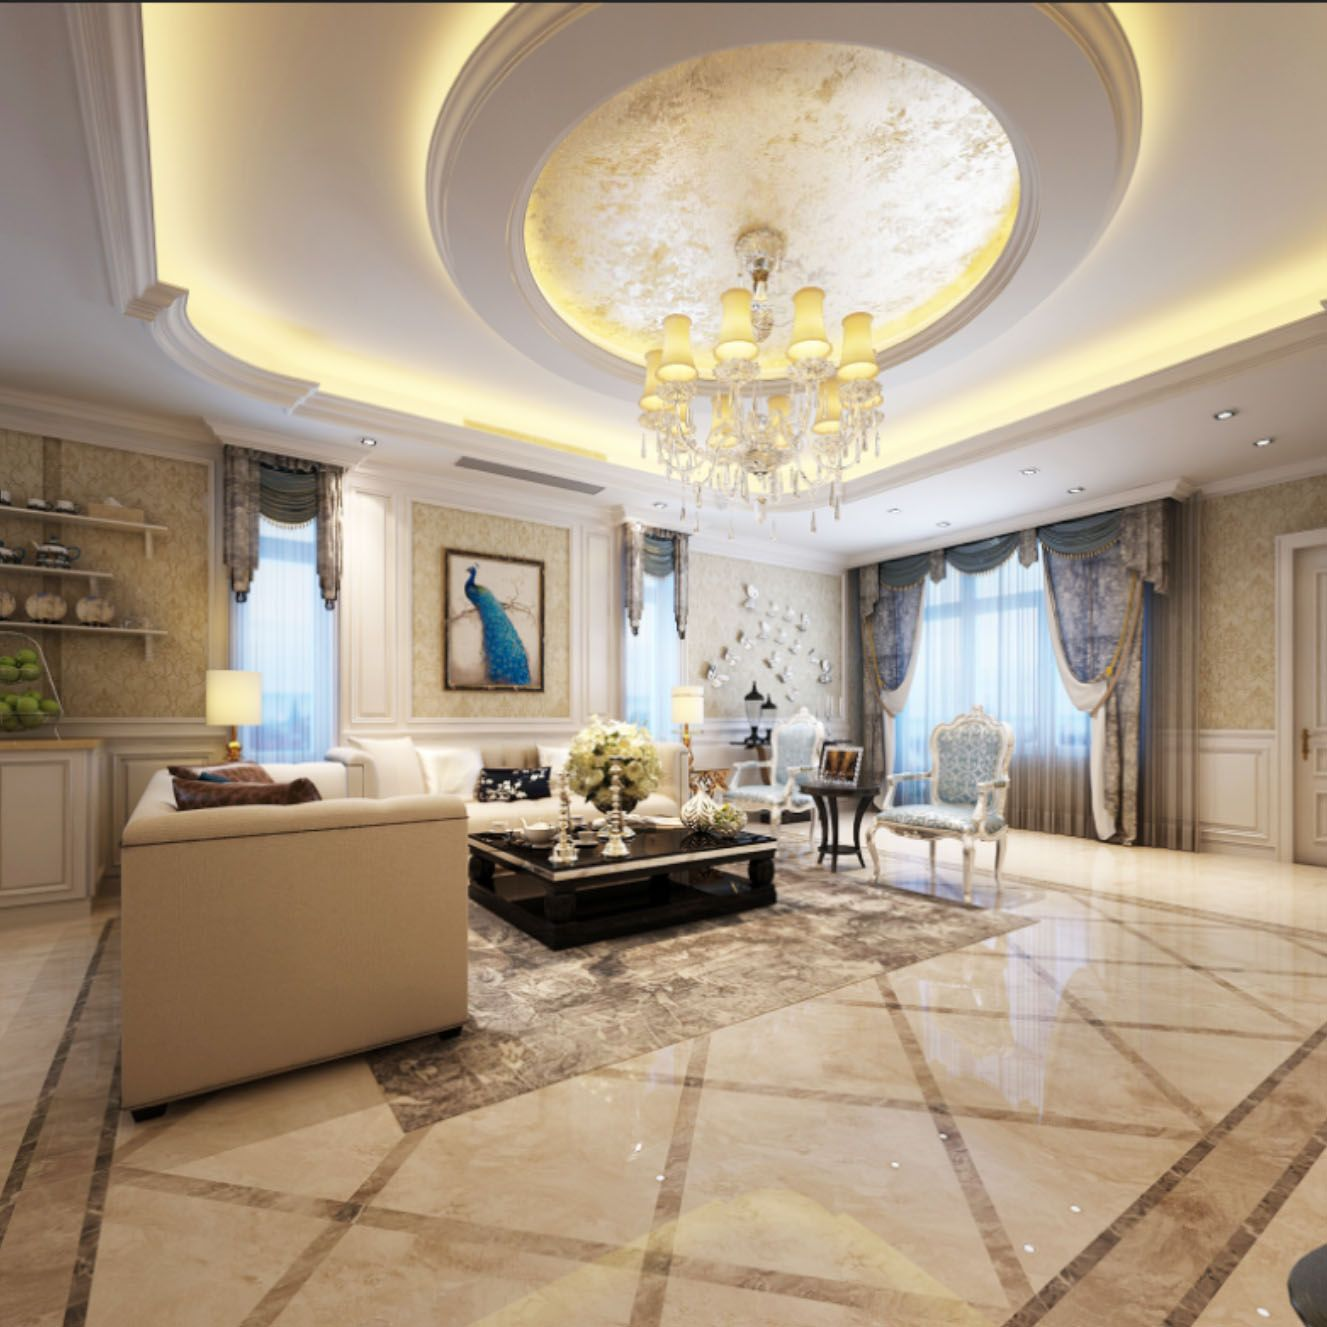 Modern Interior Decoration Living Rooms Ceiling Designs: Jane European Round Ceiling Living Room Design